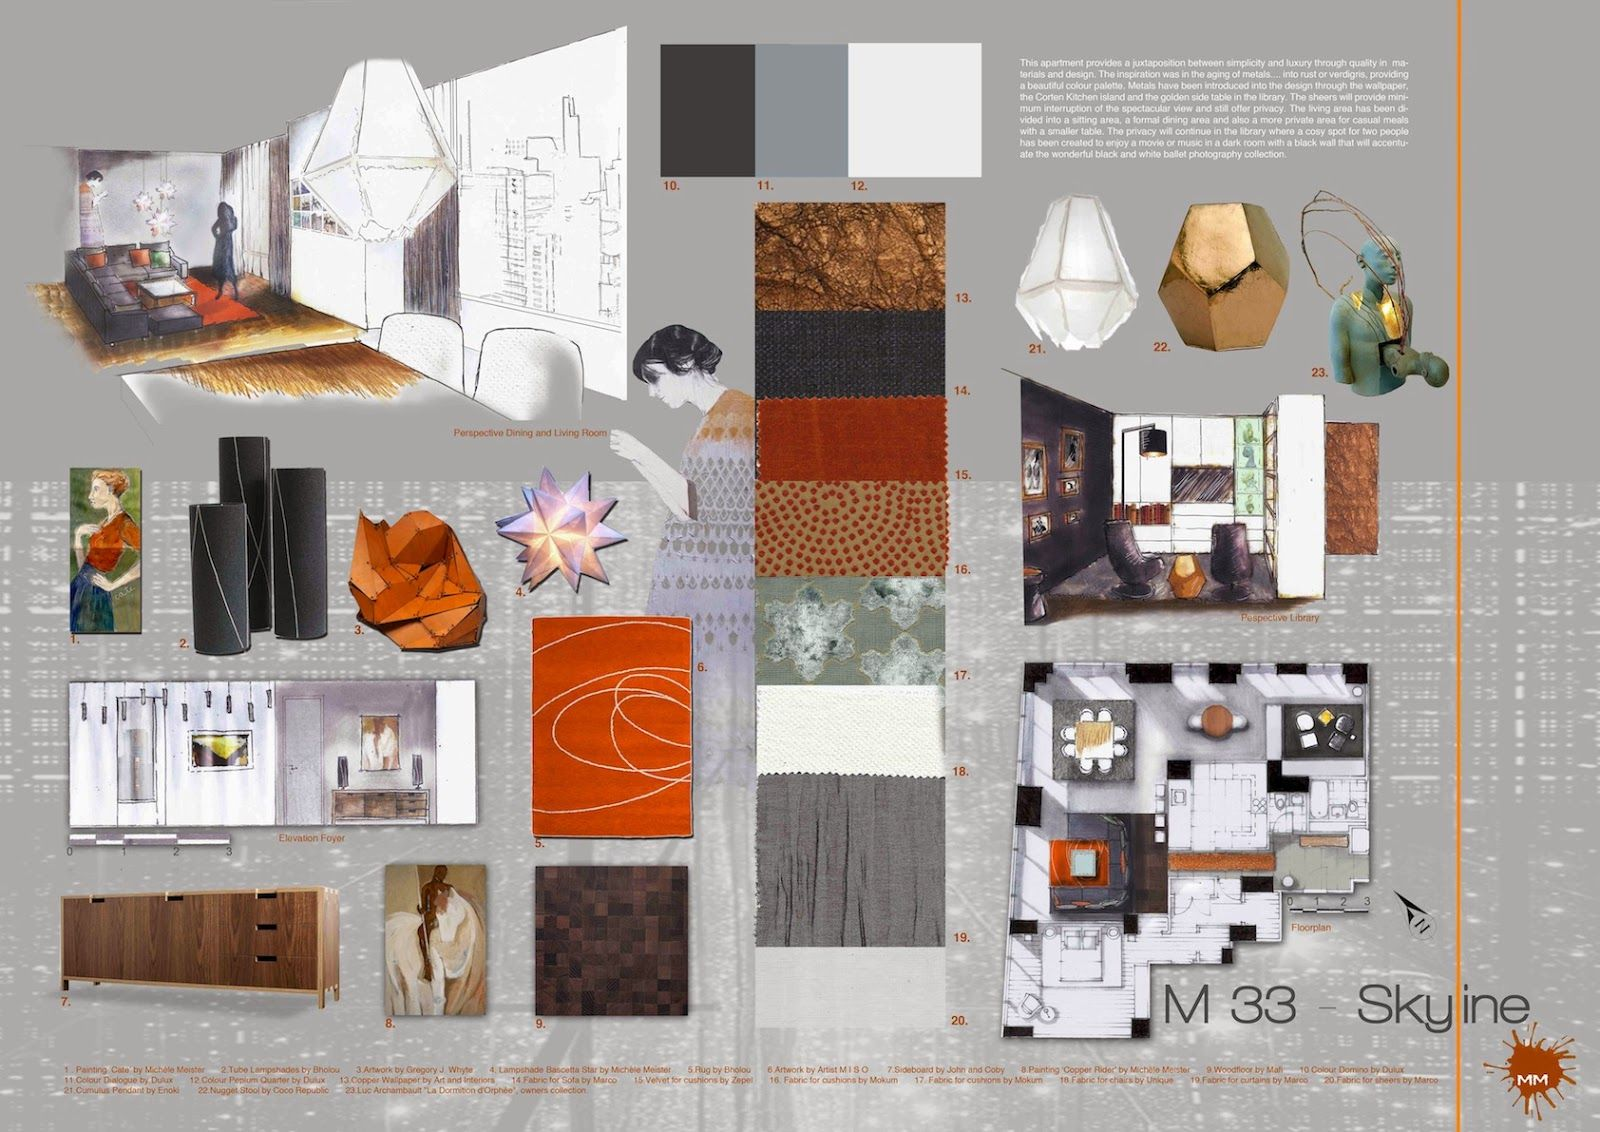 Mich le meister interior design portfolio presentation - Interior design presentation layout ...